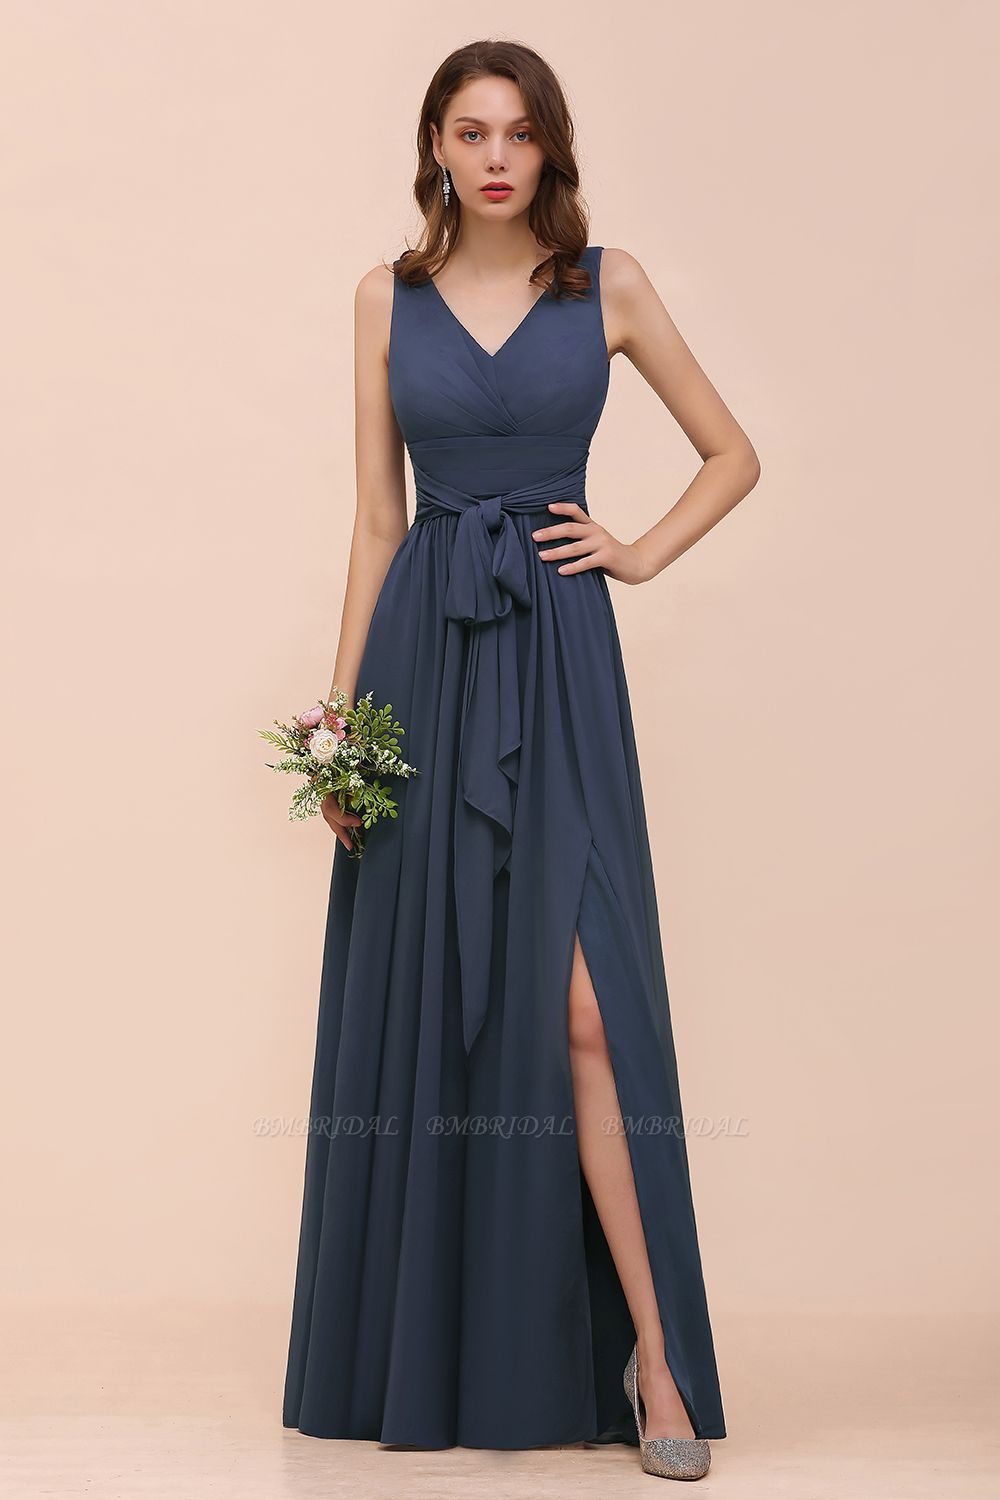 BMbridal Affordable V-Neck Chiffon Long Stormy Bridesmaid Dress With Slit